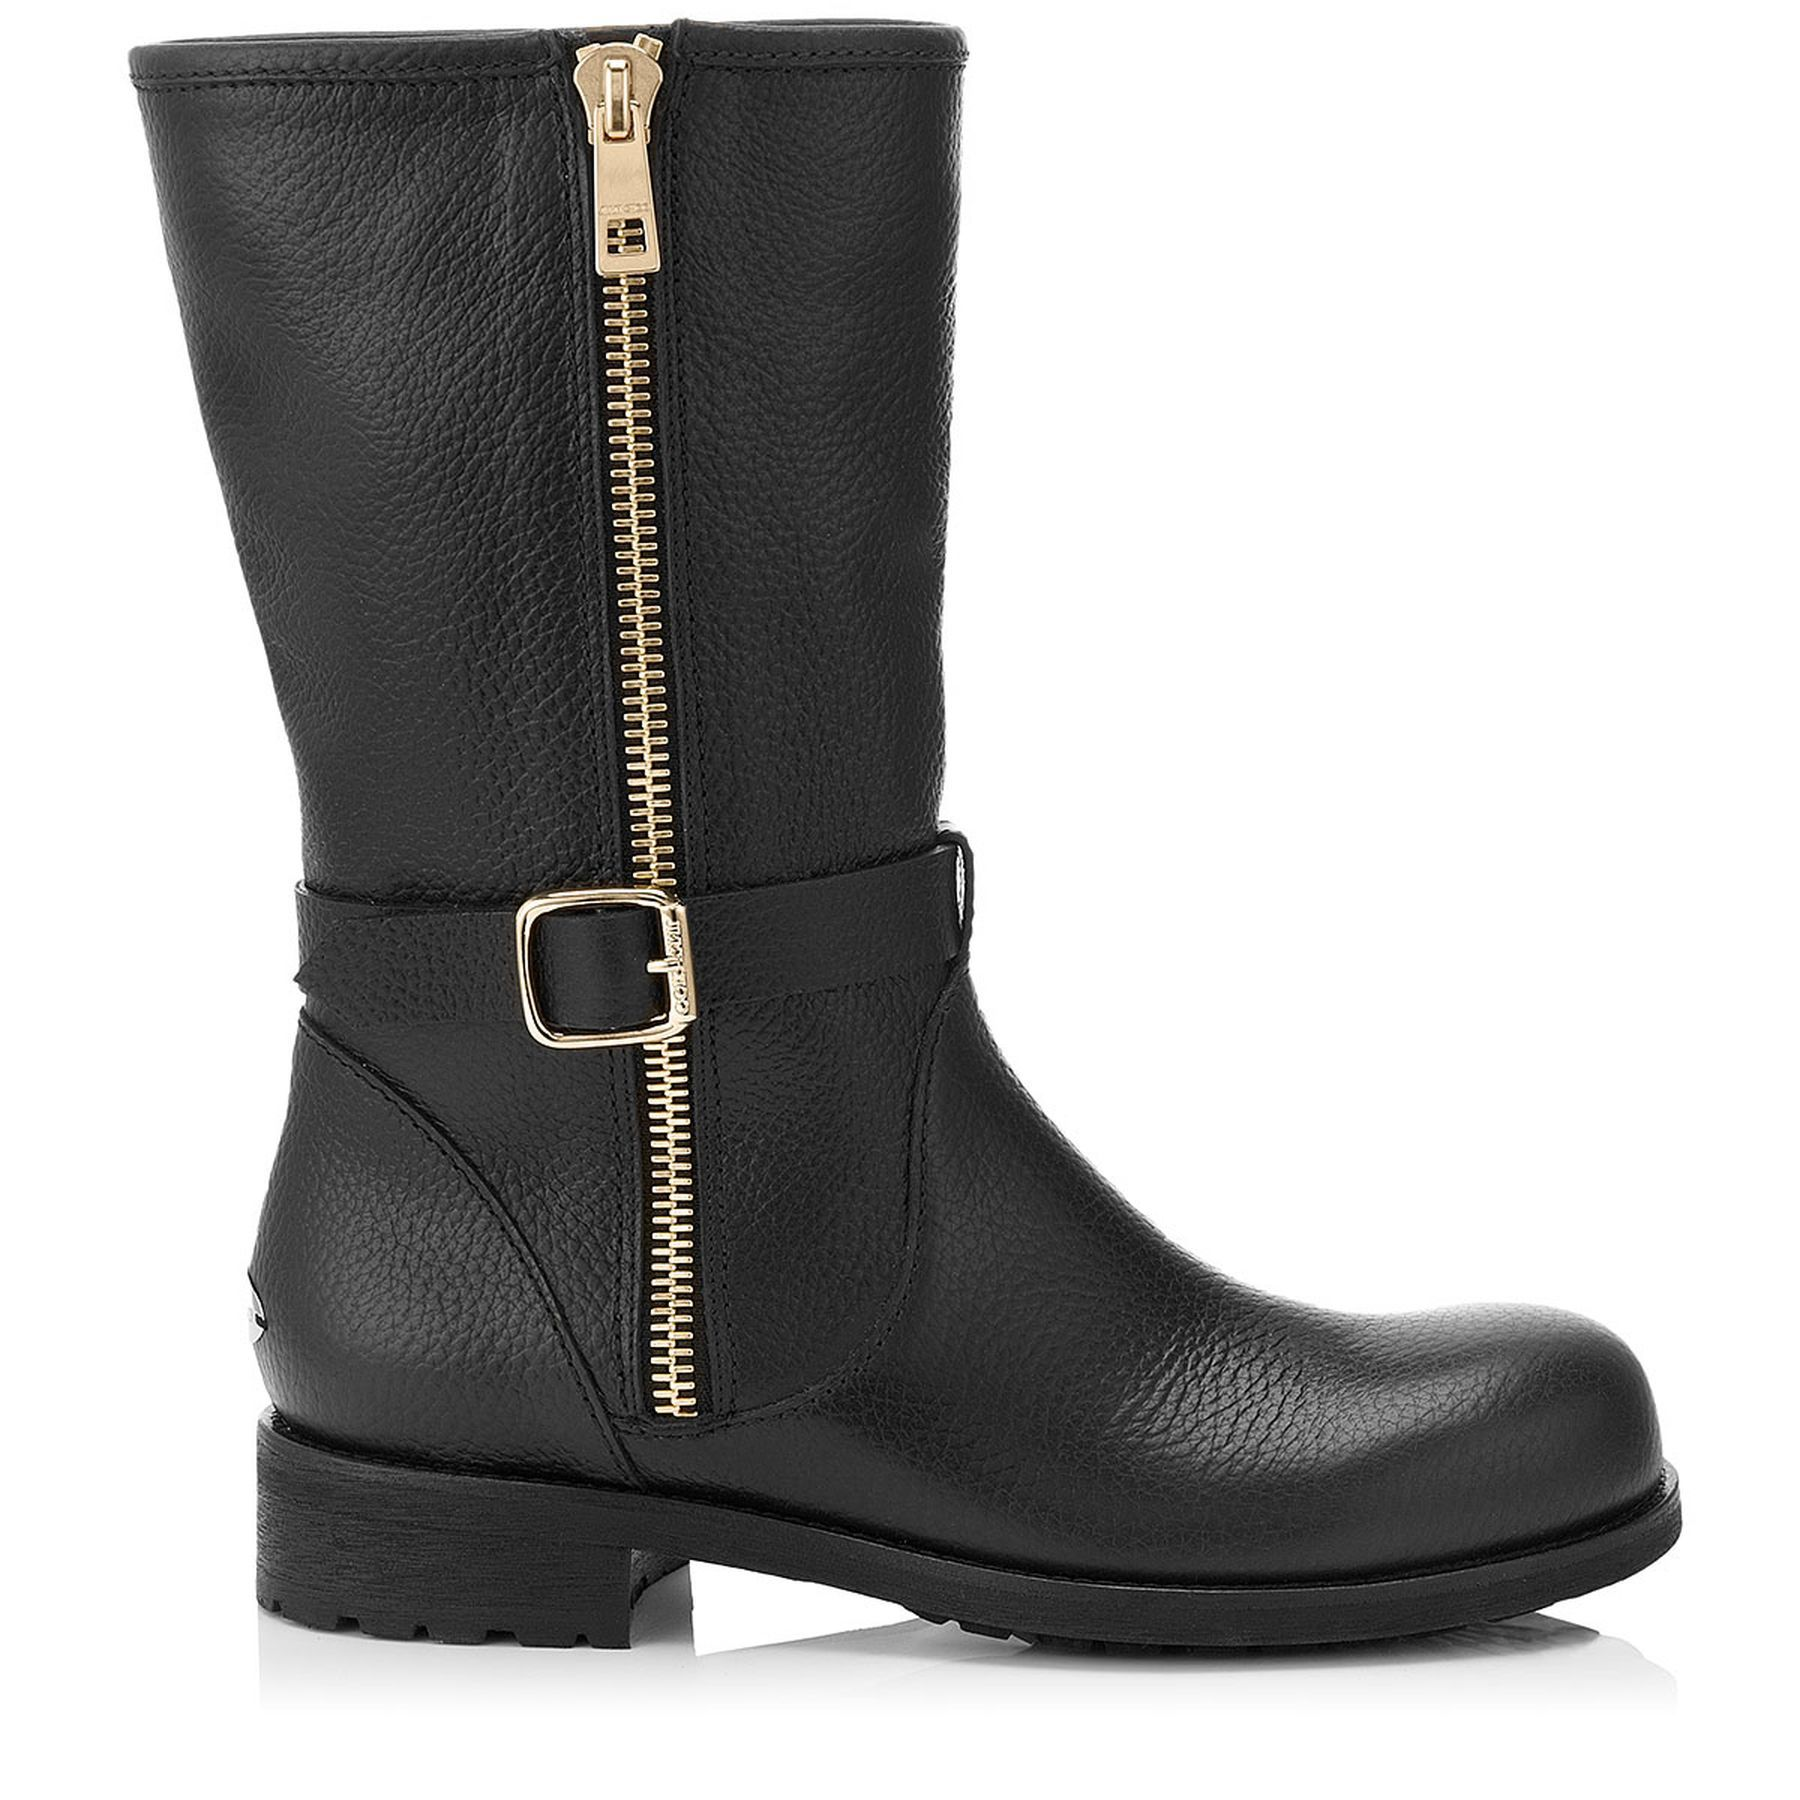 Black Grainy Leather Boots | Durum | Cruise 15 | JIMMY CHOO Shoes